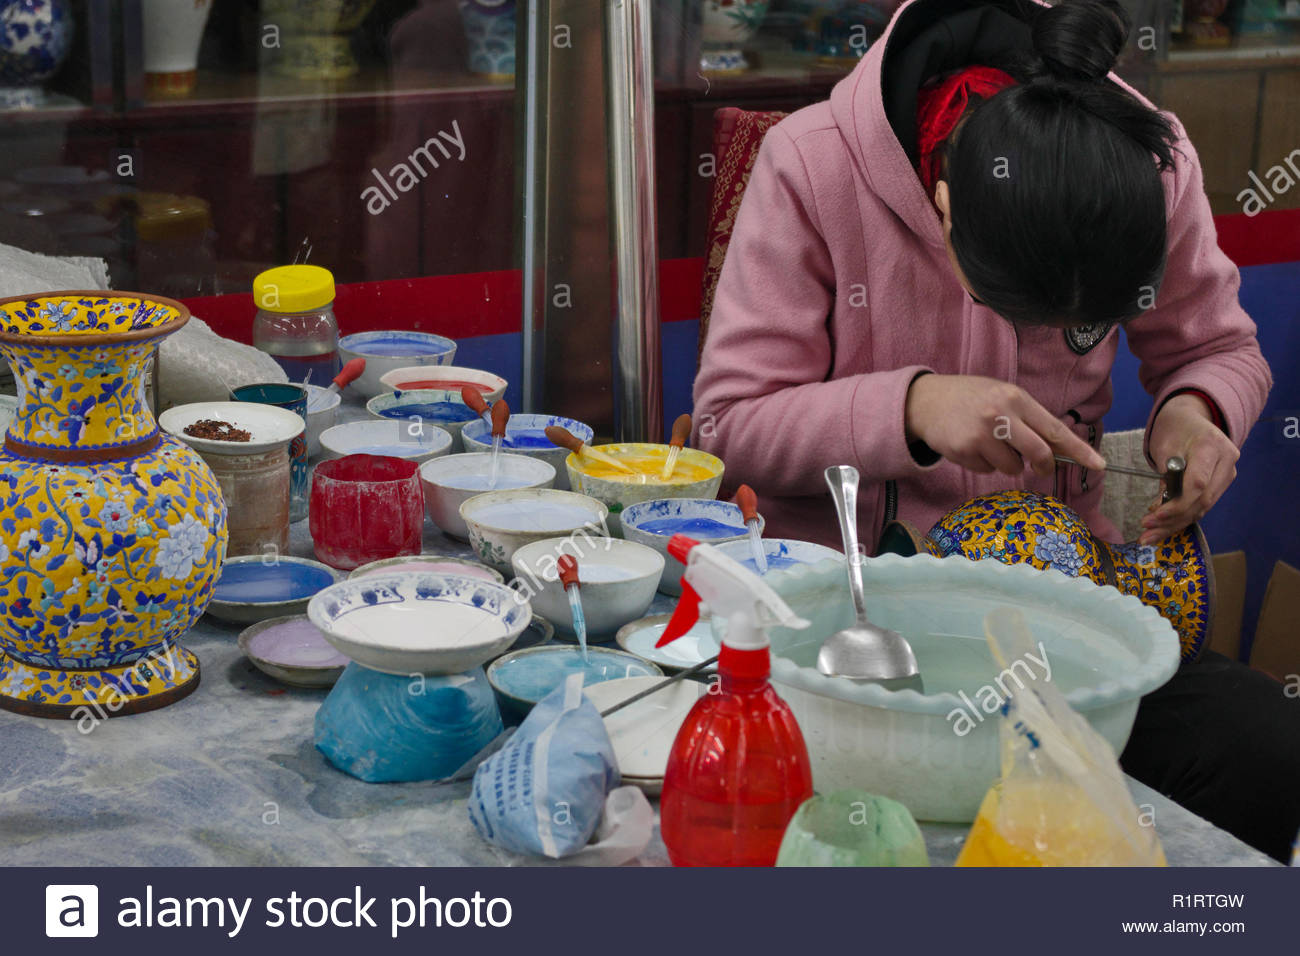 CLOISONNE POTTERY CRAFTSWOMEN AT WORK, BEIJING, PEOPLE'S REPUBLIC OF CHINA - Stock Image